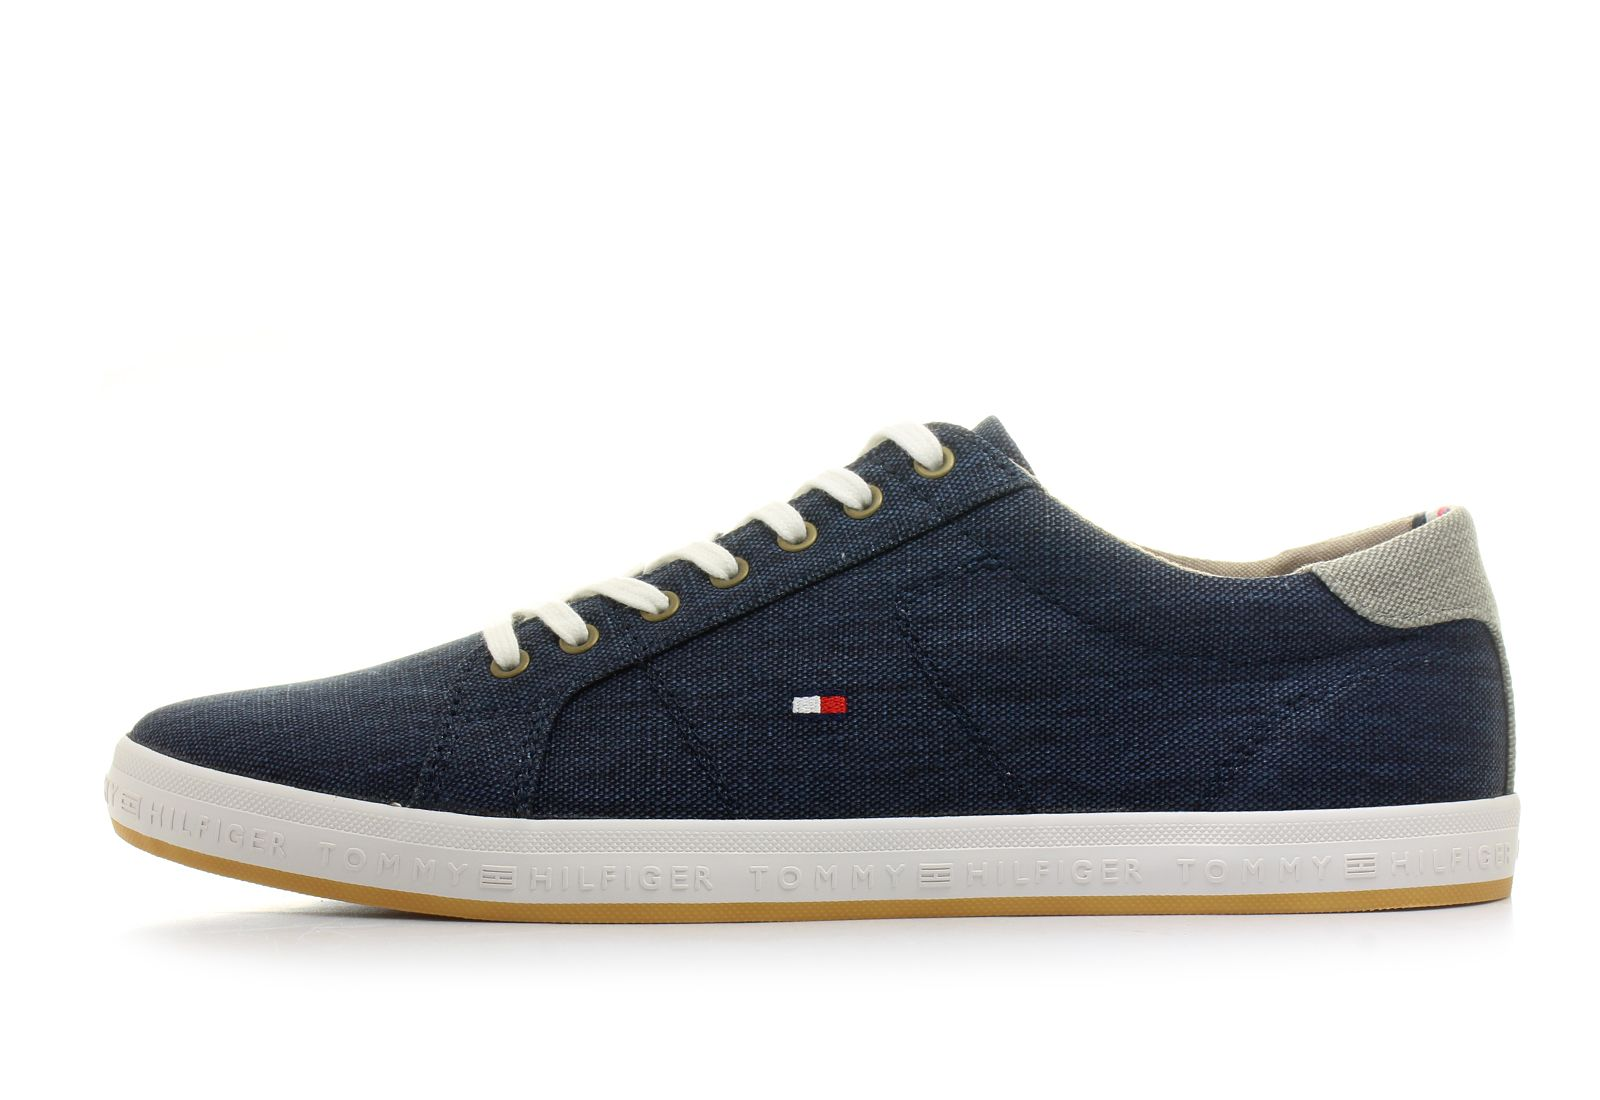 1136c55c89f1c Tommy Hilfiger Shoes - Howell 1d2 - 17S-0471-403 - Online shop for ...